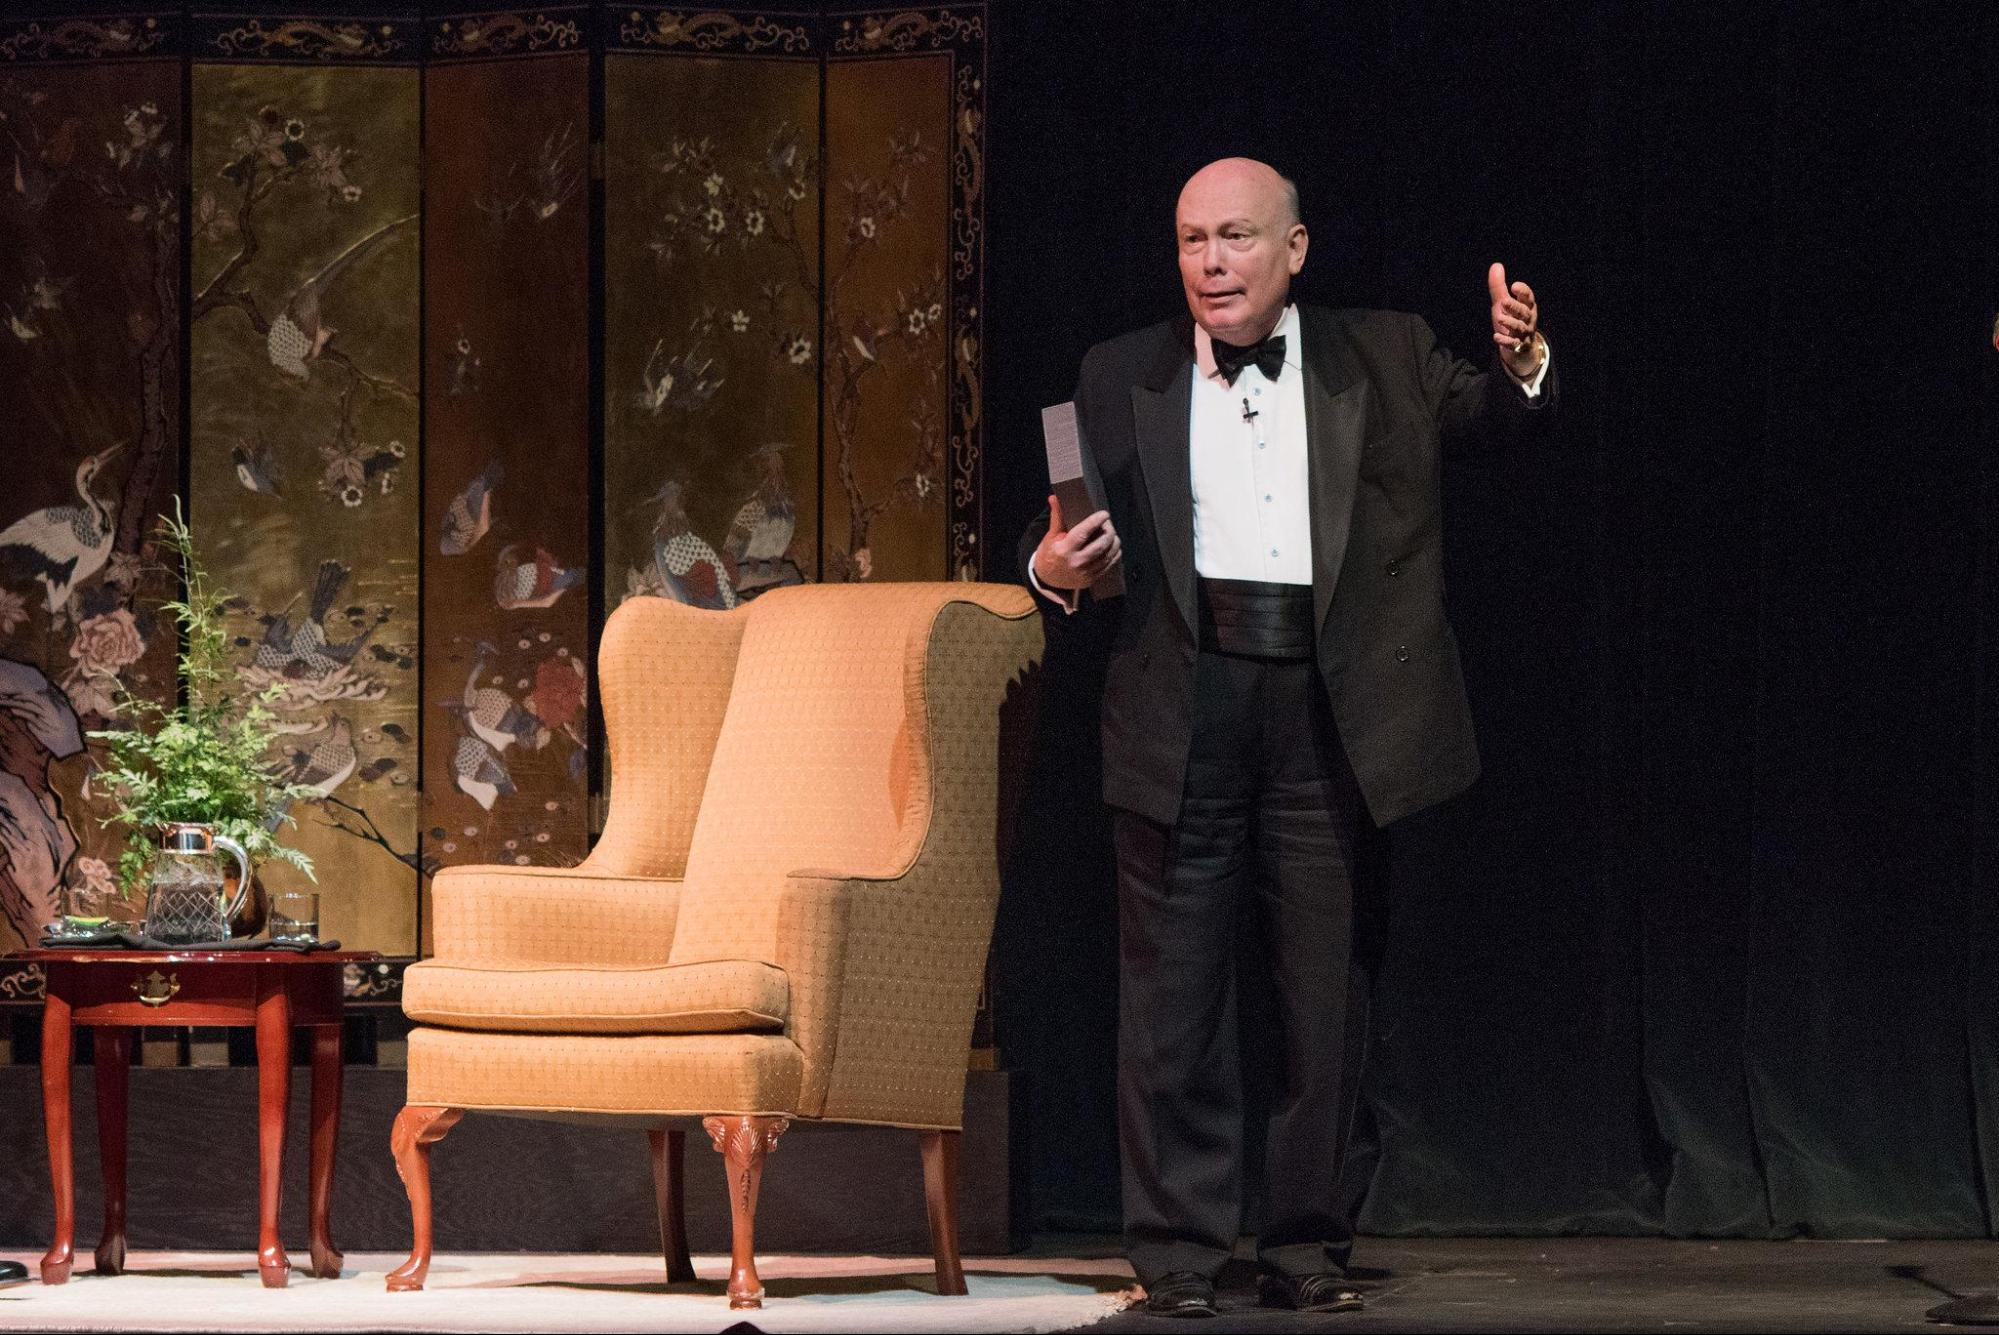 Lord Fellowes takes the stage at the Dock Street Theater